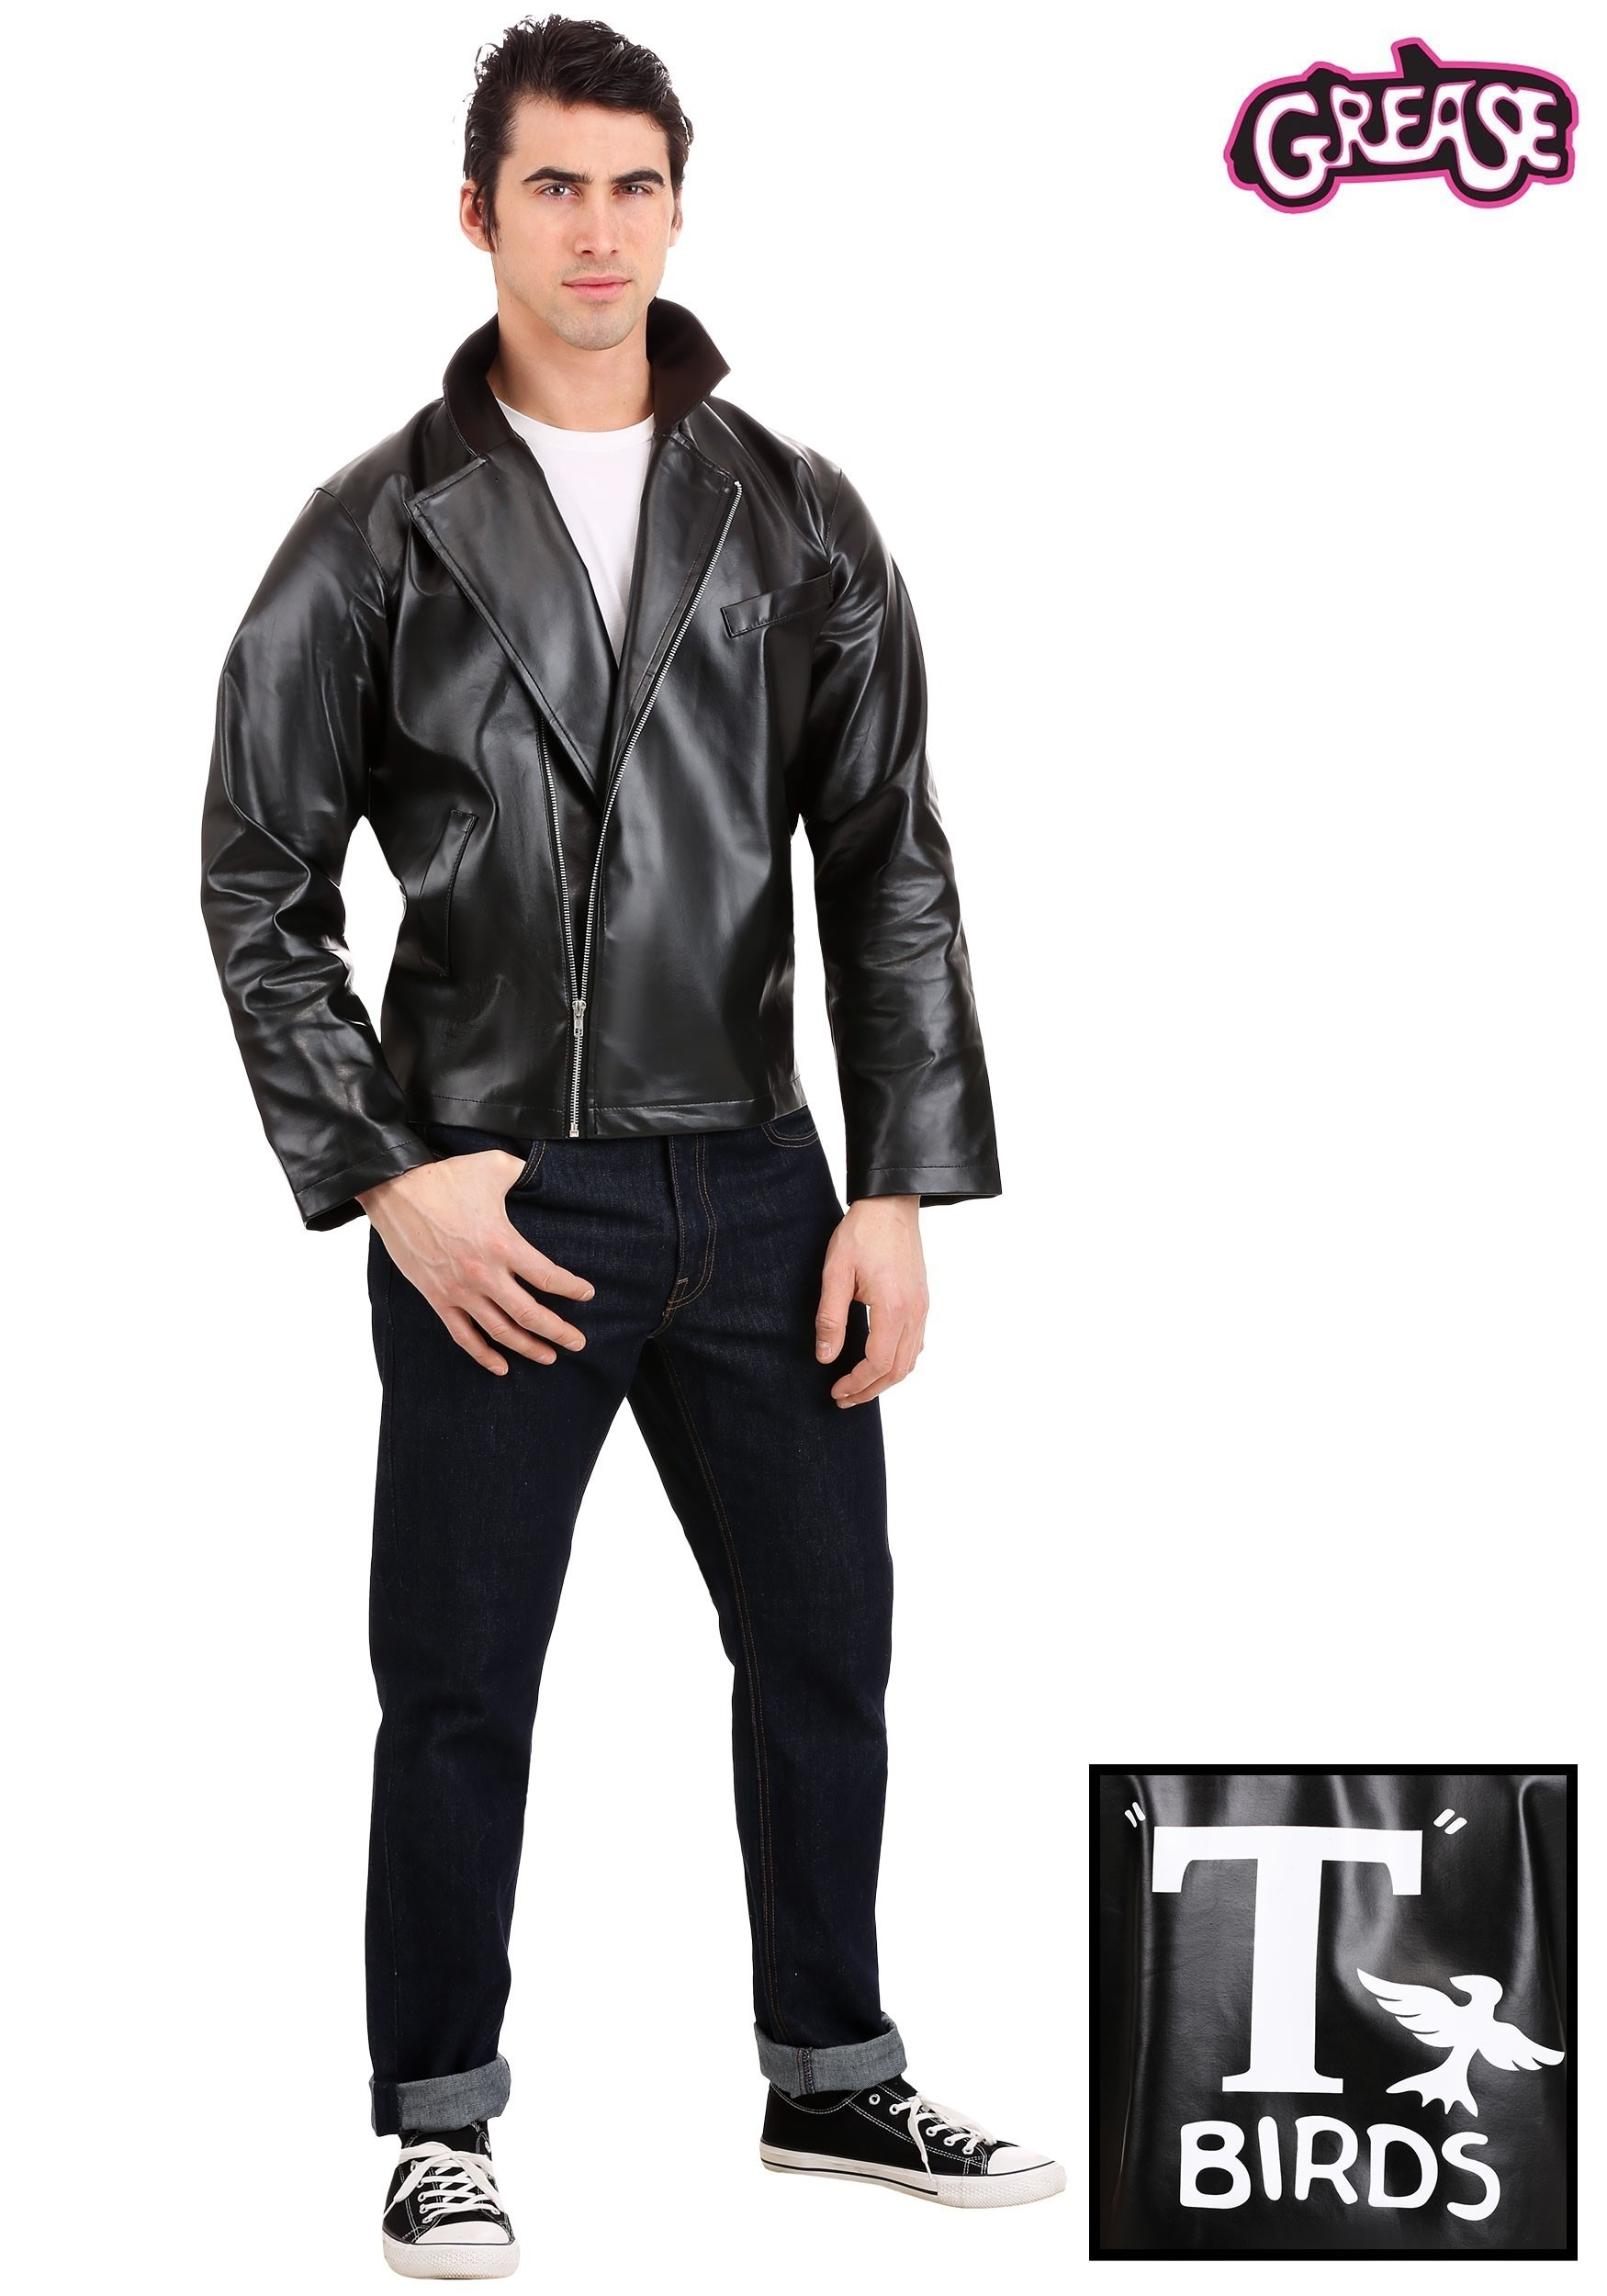 adult grease t birds jacket - Greece Halloween Costumes